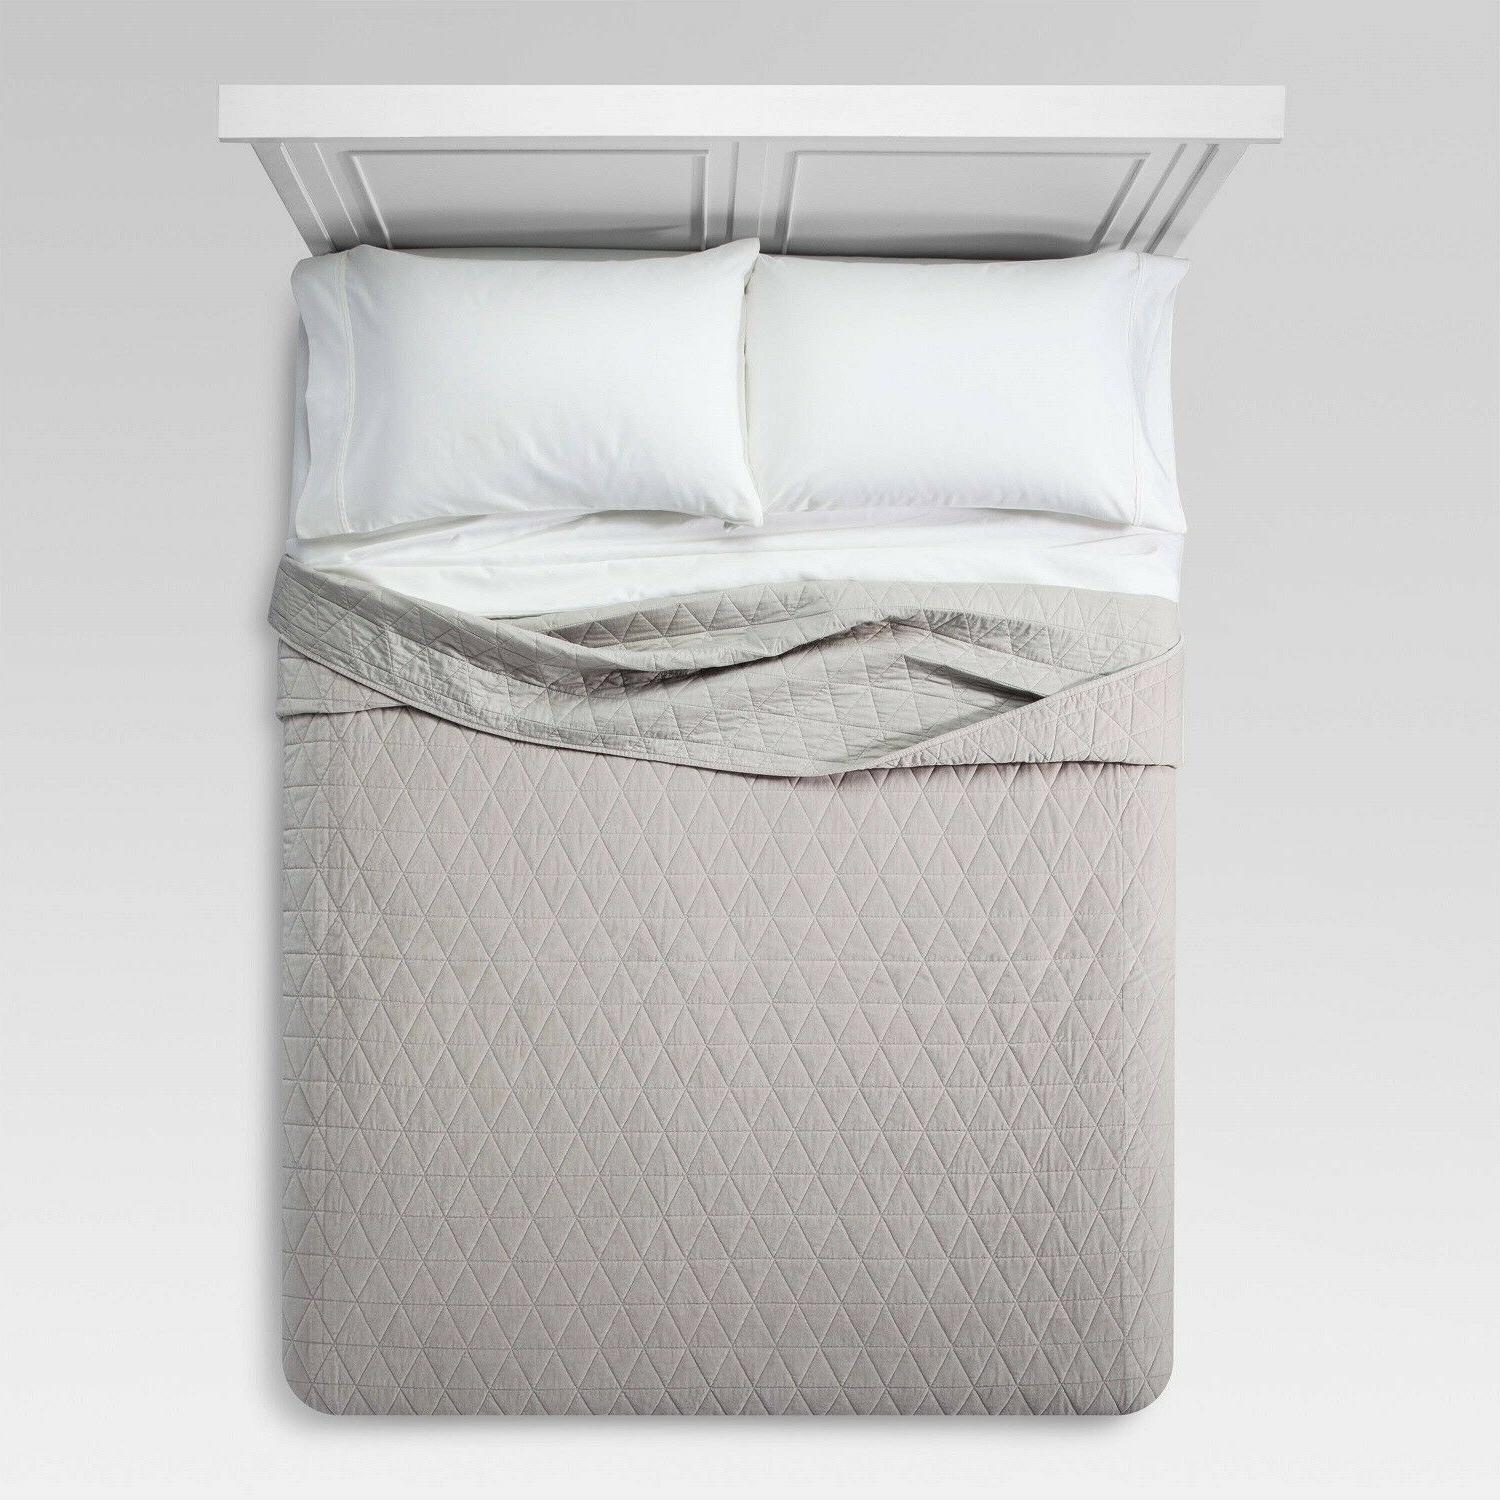 Threshold Quilted Triangle Velvet Quilt Full Queen  Gray Gre